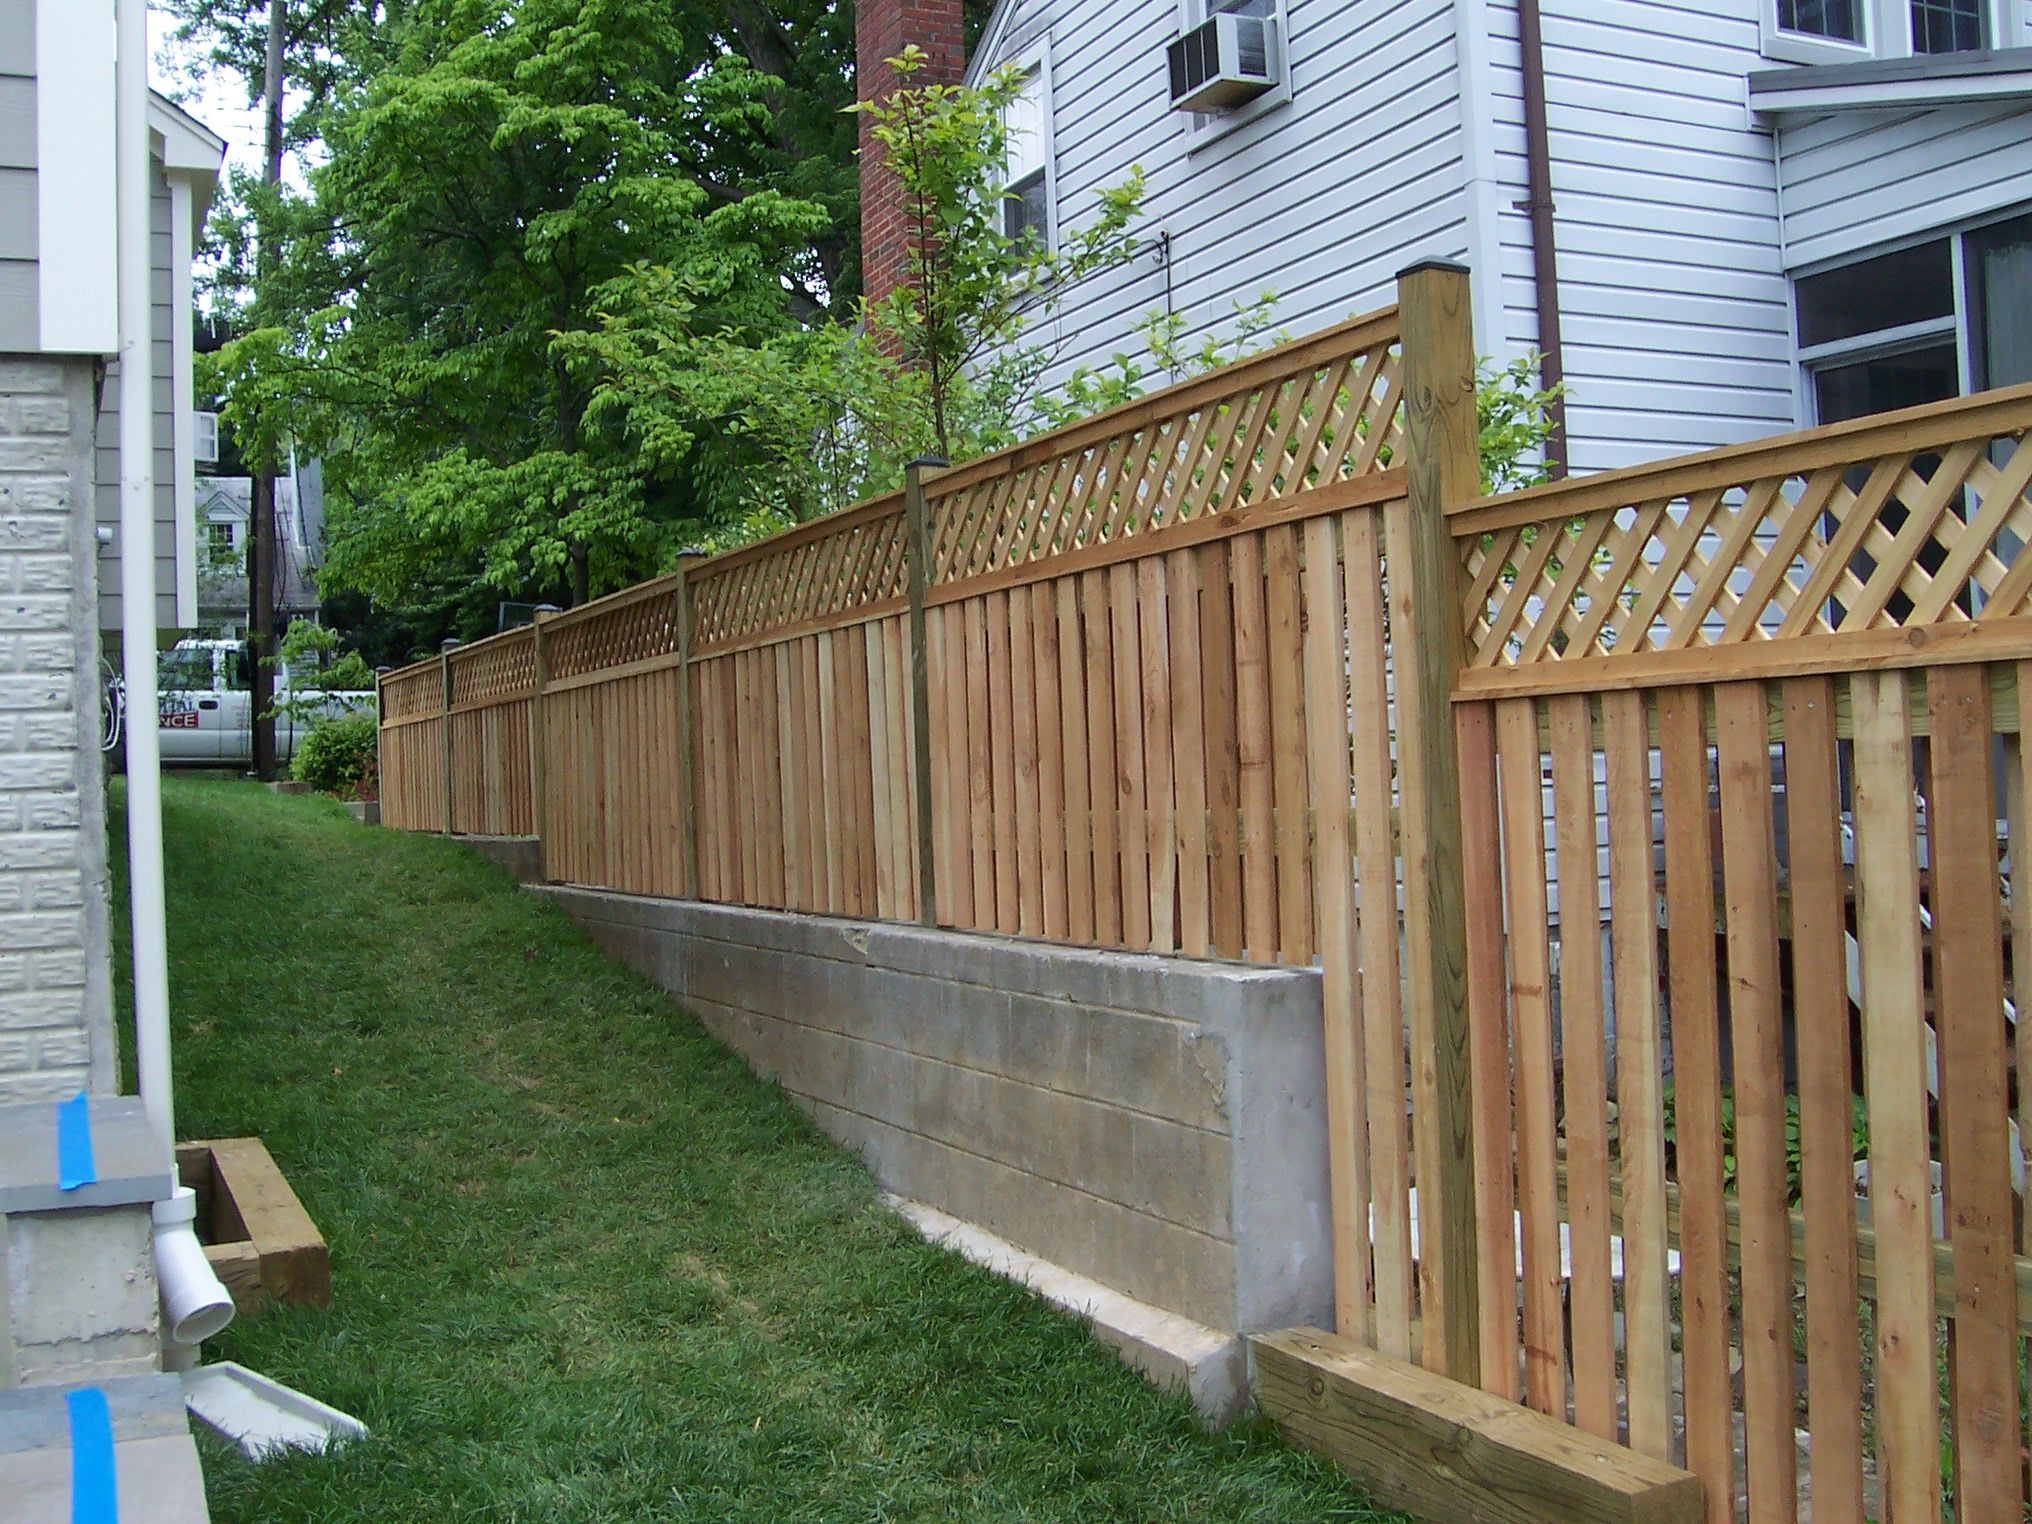 Wood Semi Private Fence Alternating Board With Lattice Topper On Retaining Wall Fence Design Modern Fence Design Wood Fence Design